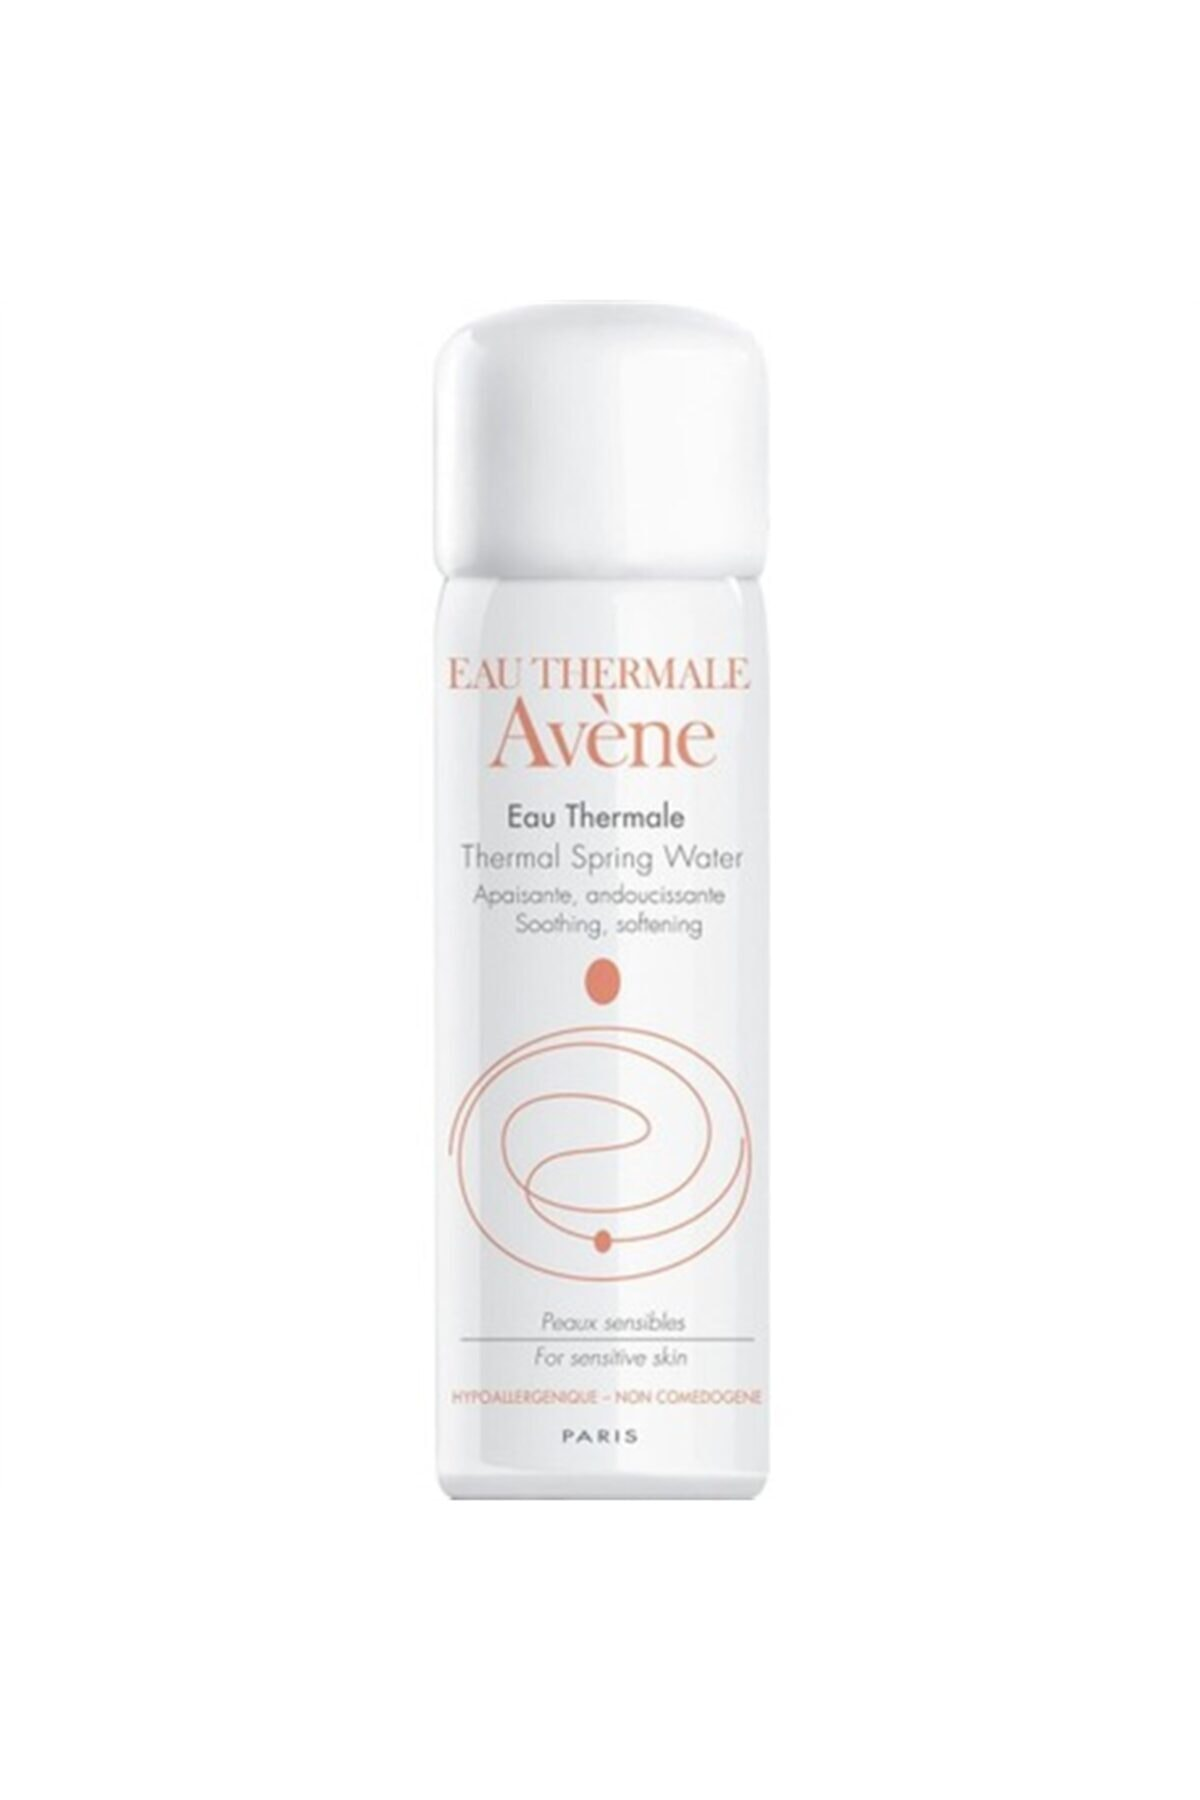 Avene Eau Thermale Spray 50 ml Termal Suyu Spreyi TXCEBE9E67901 1